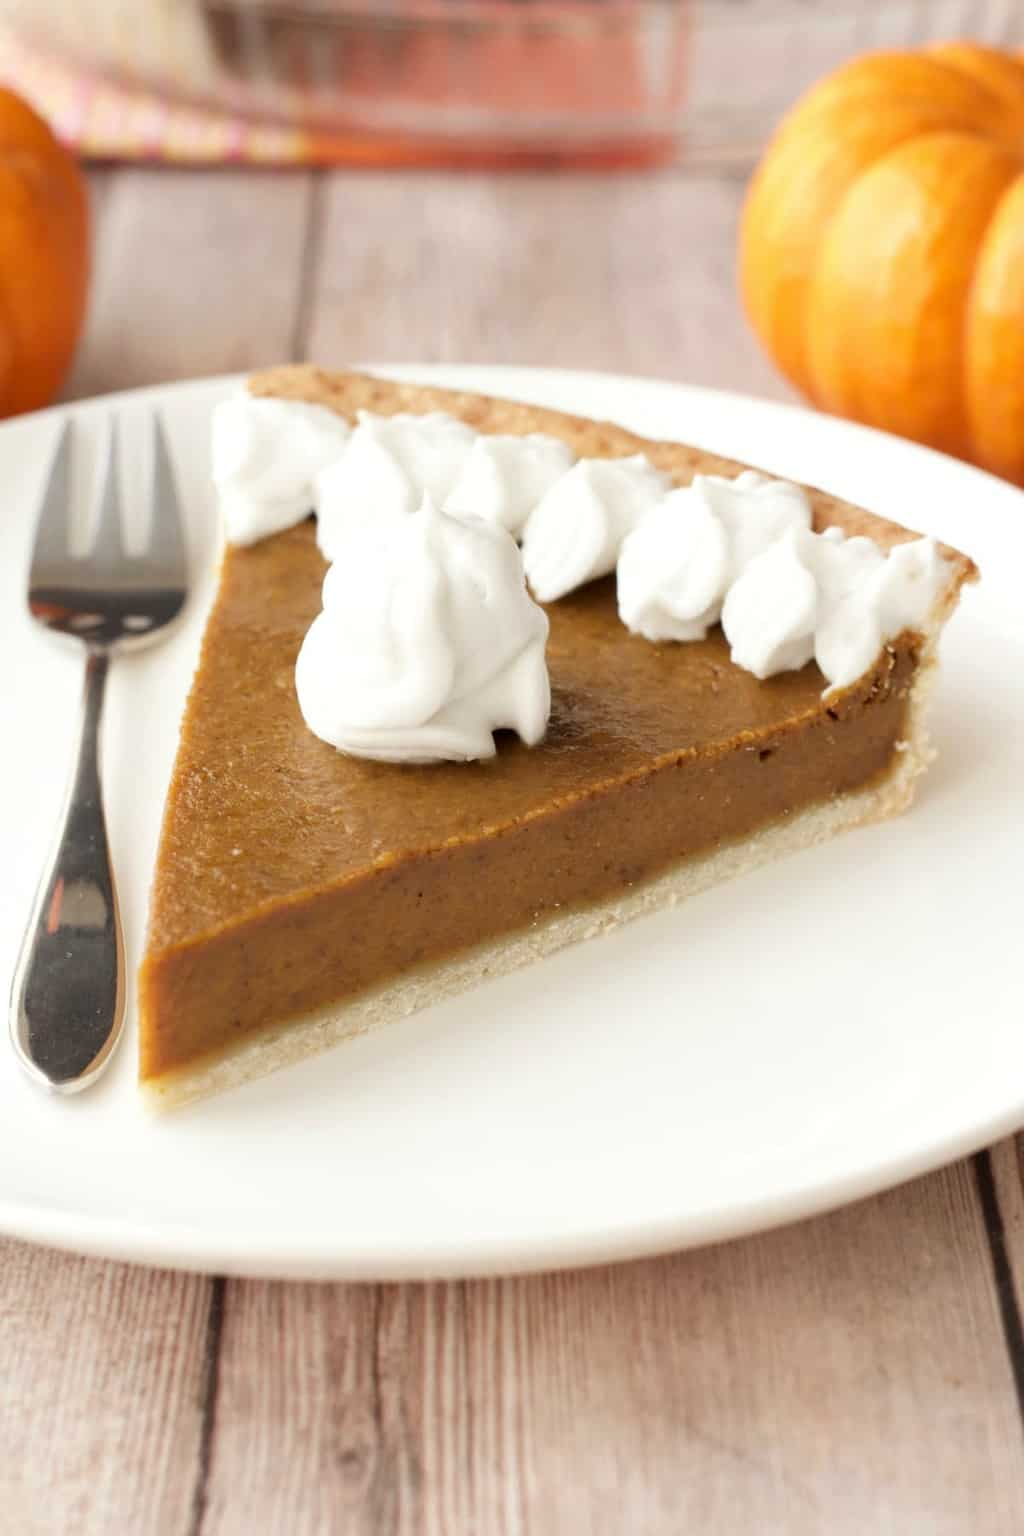 A slice of vegan pumpkin pie topped with whipped cream on a white plate with a cake fork.